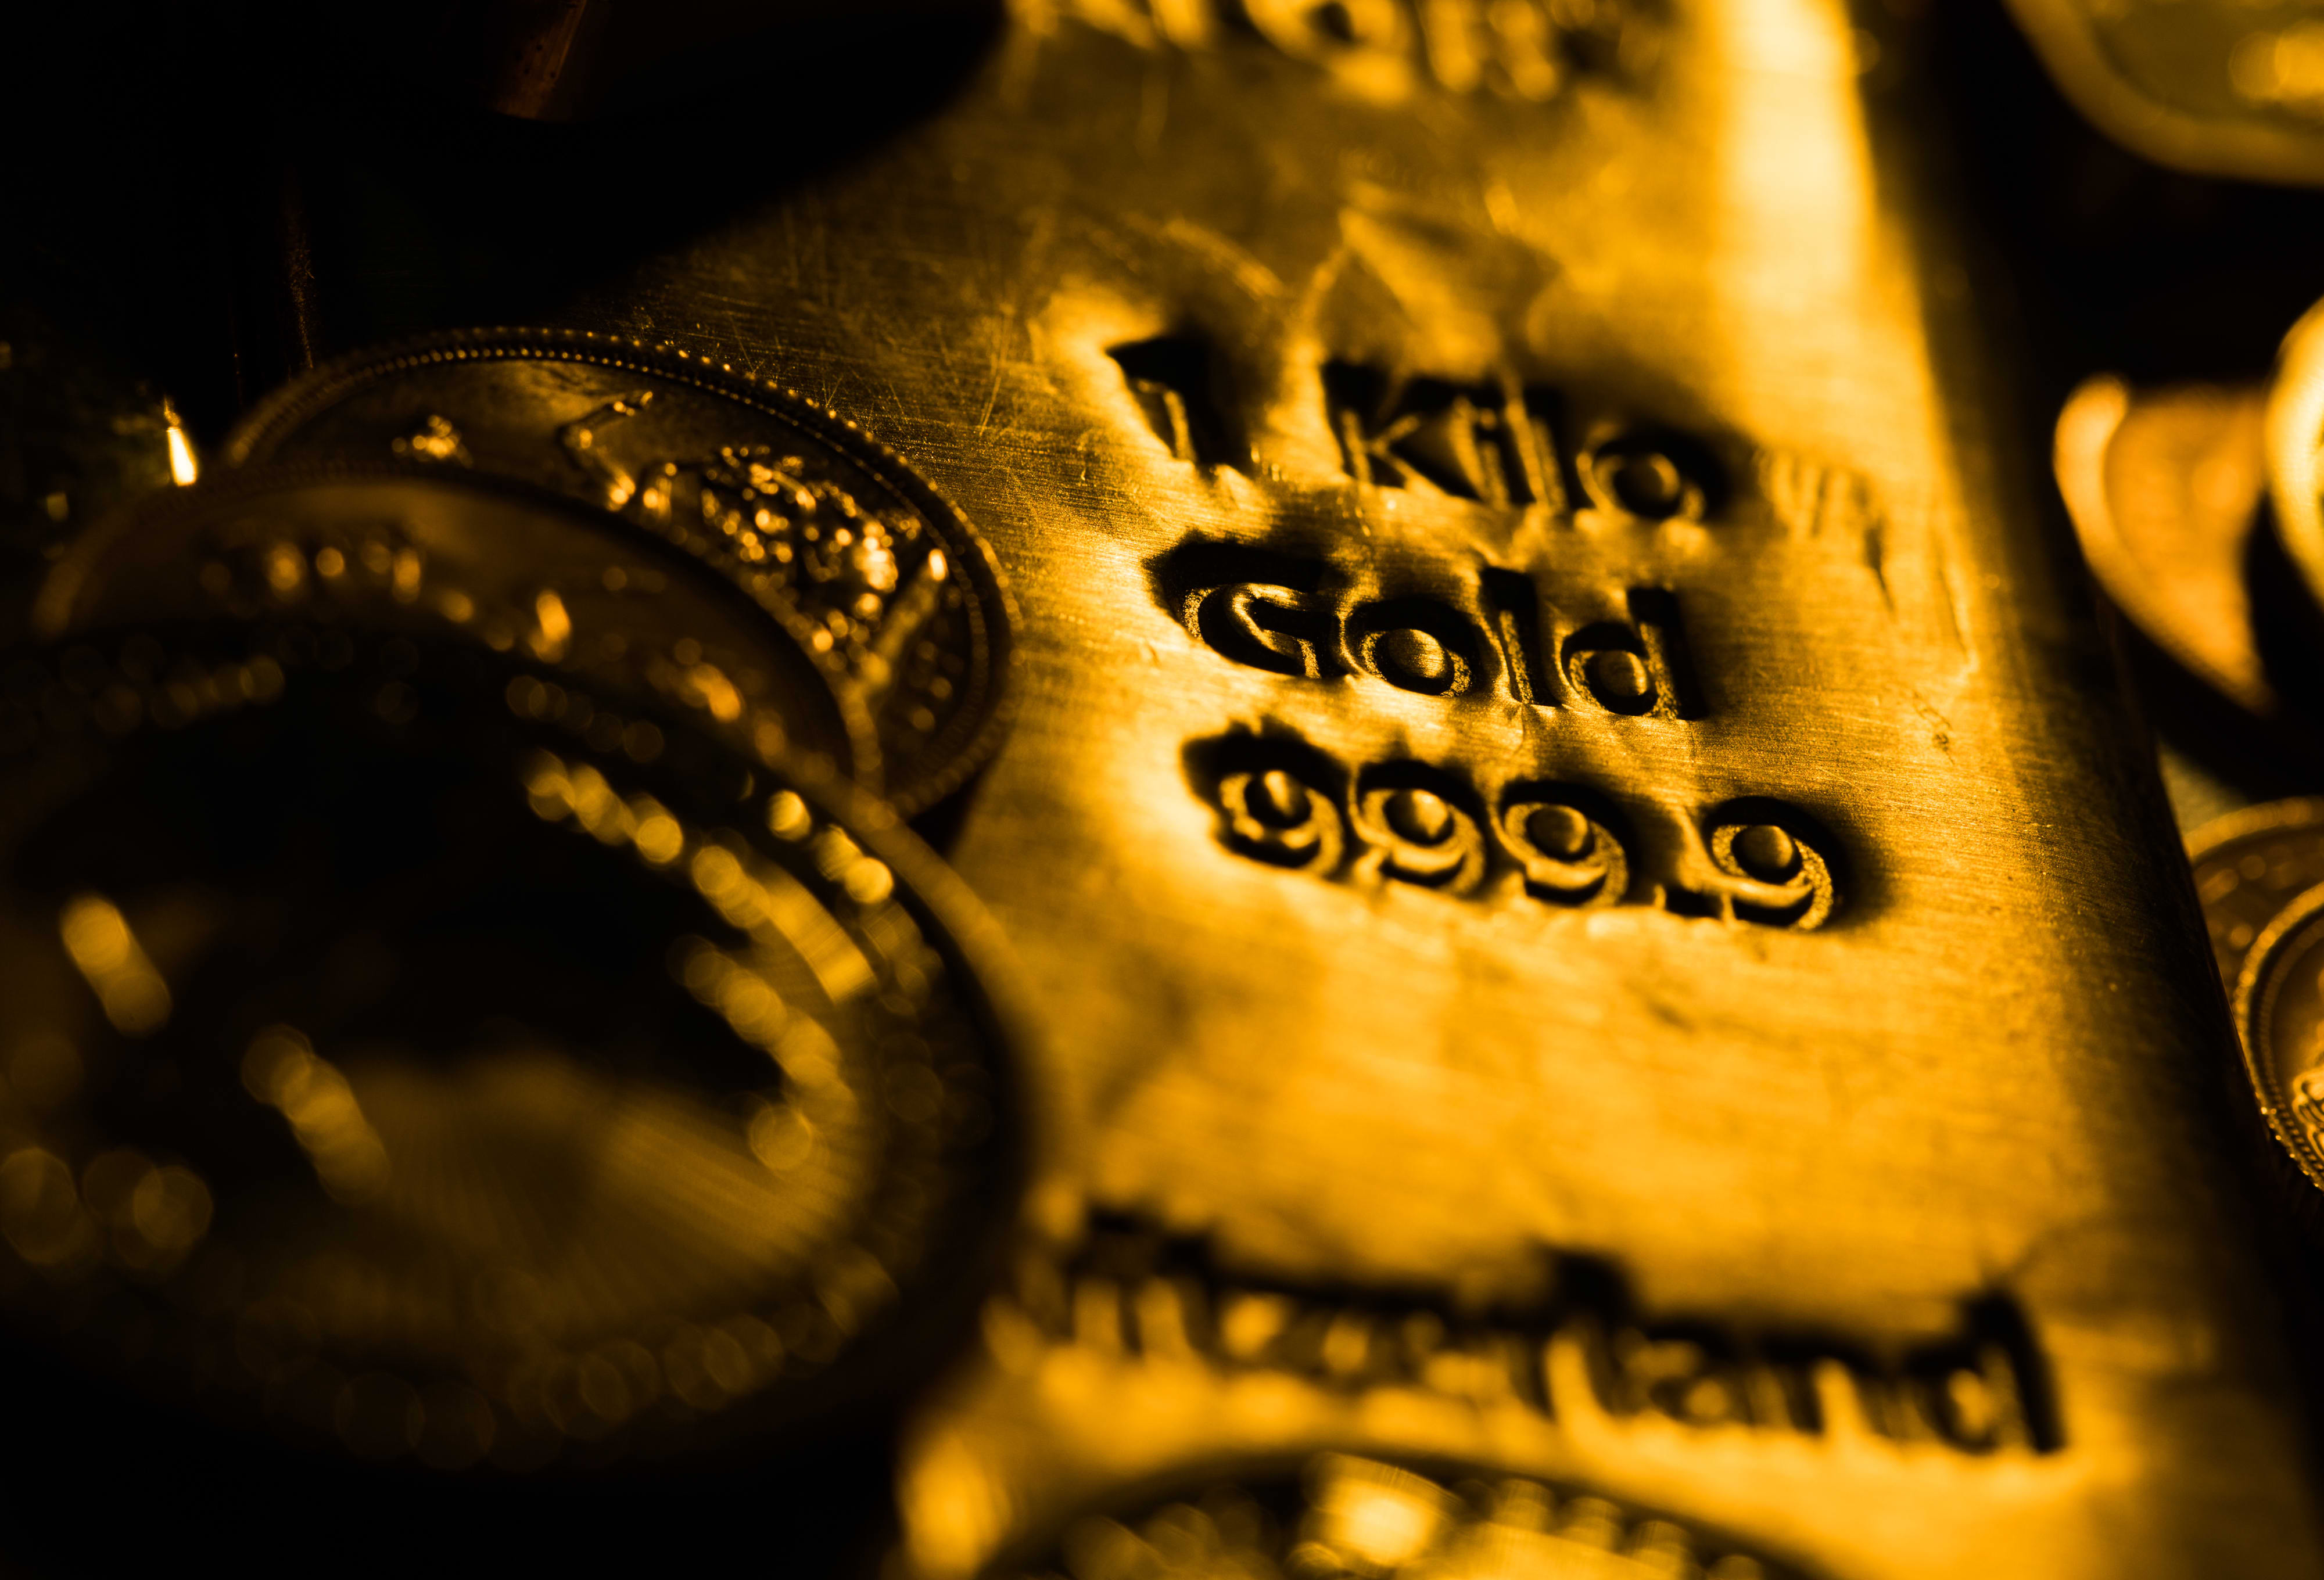 Gold slumps to 9-month trough as yields, dollar rally continues - CNBC